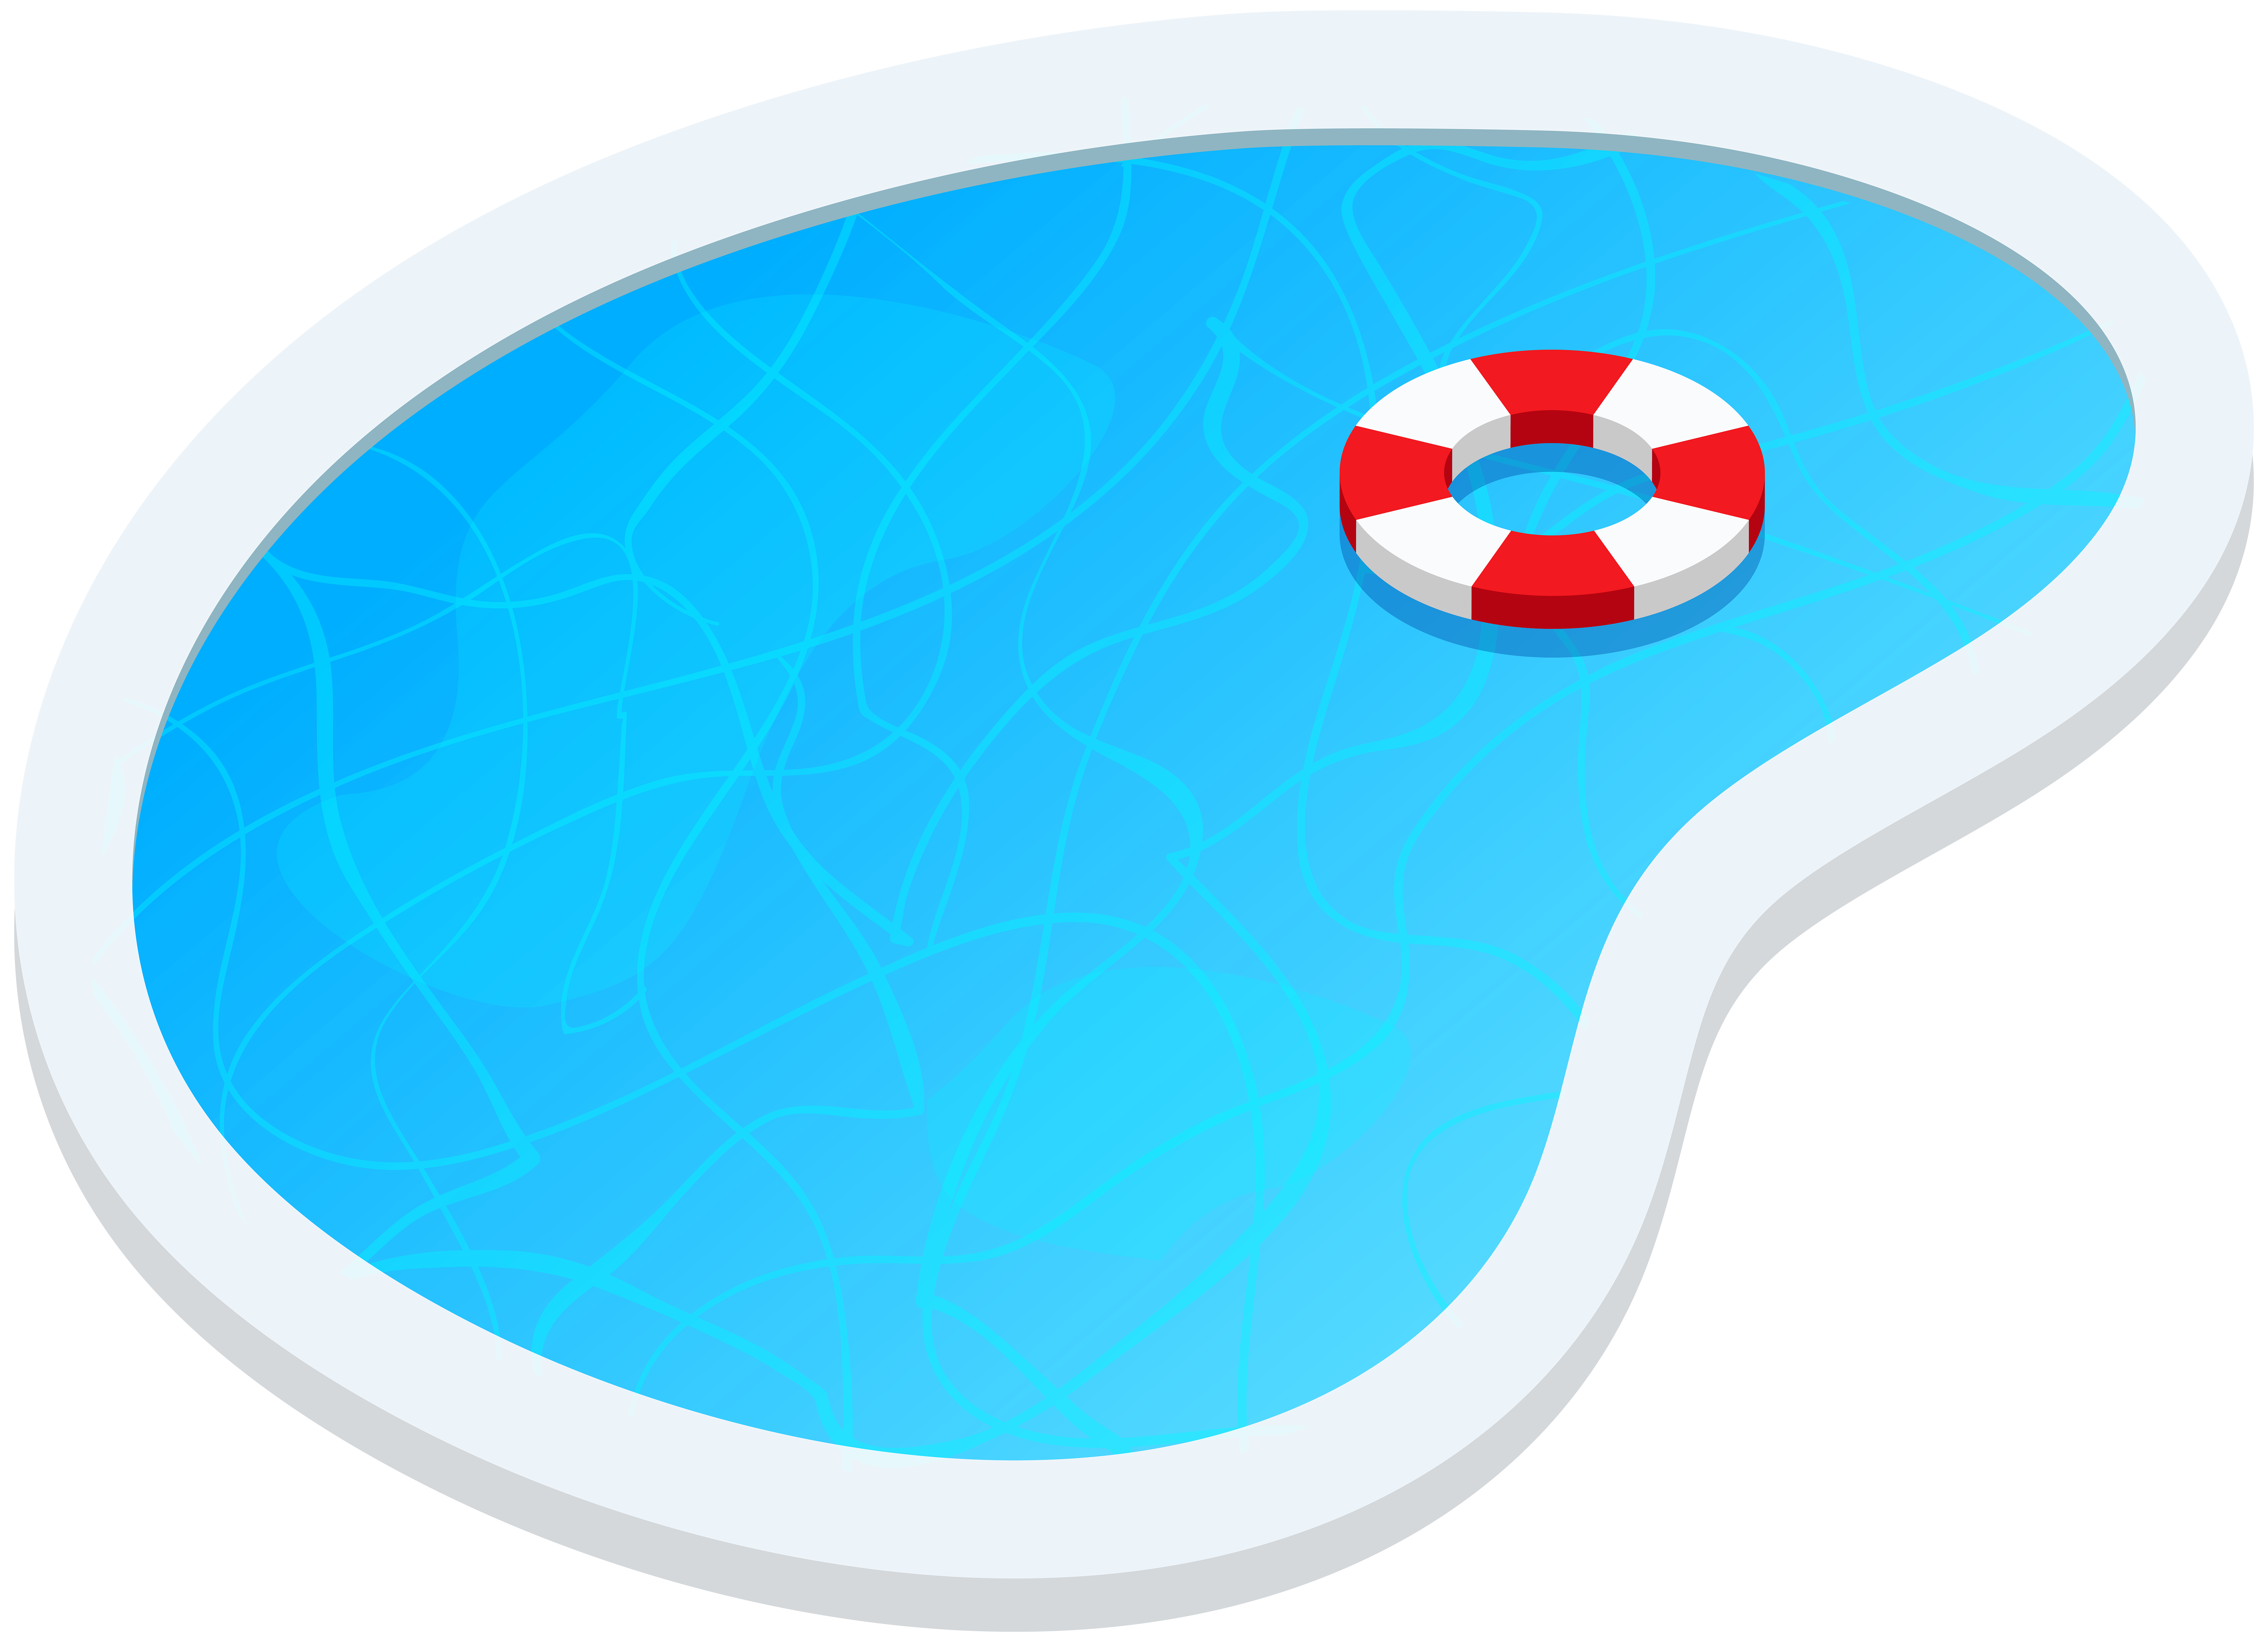 pool clipart dog swimming for download and use images #26624